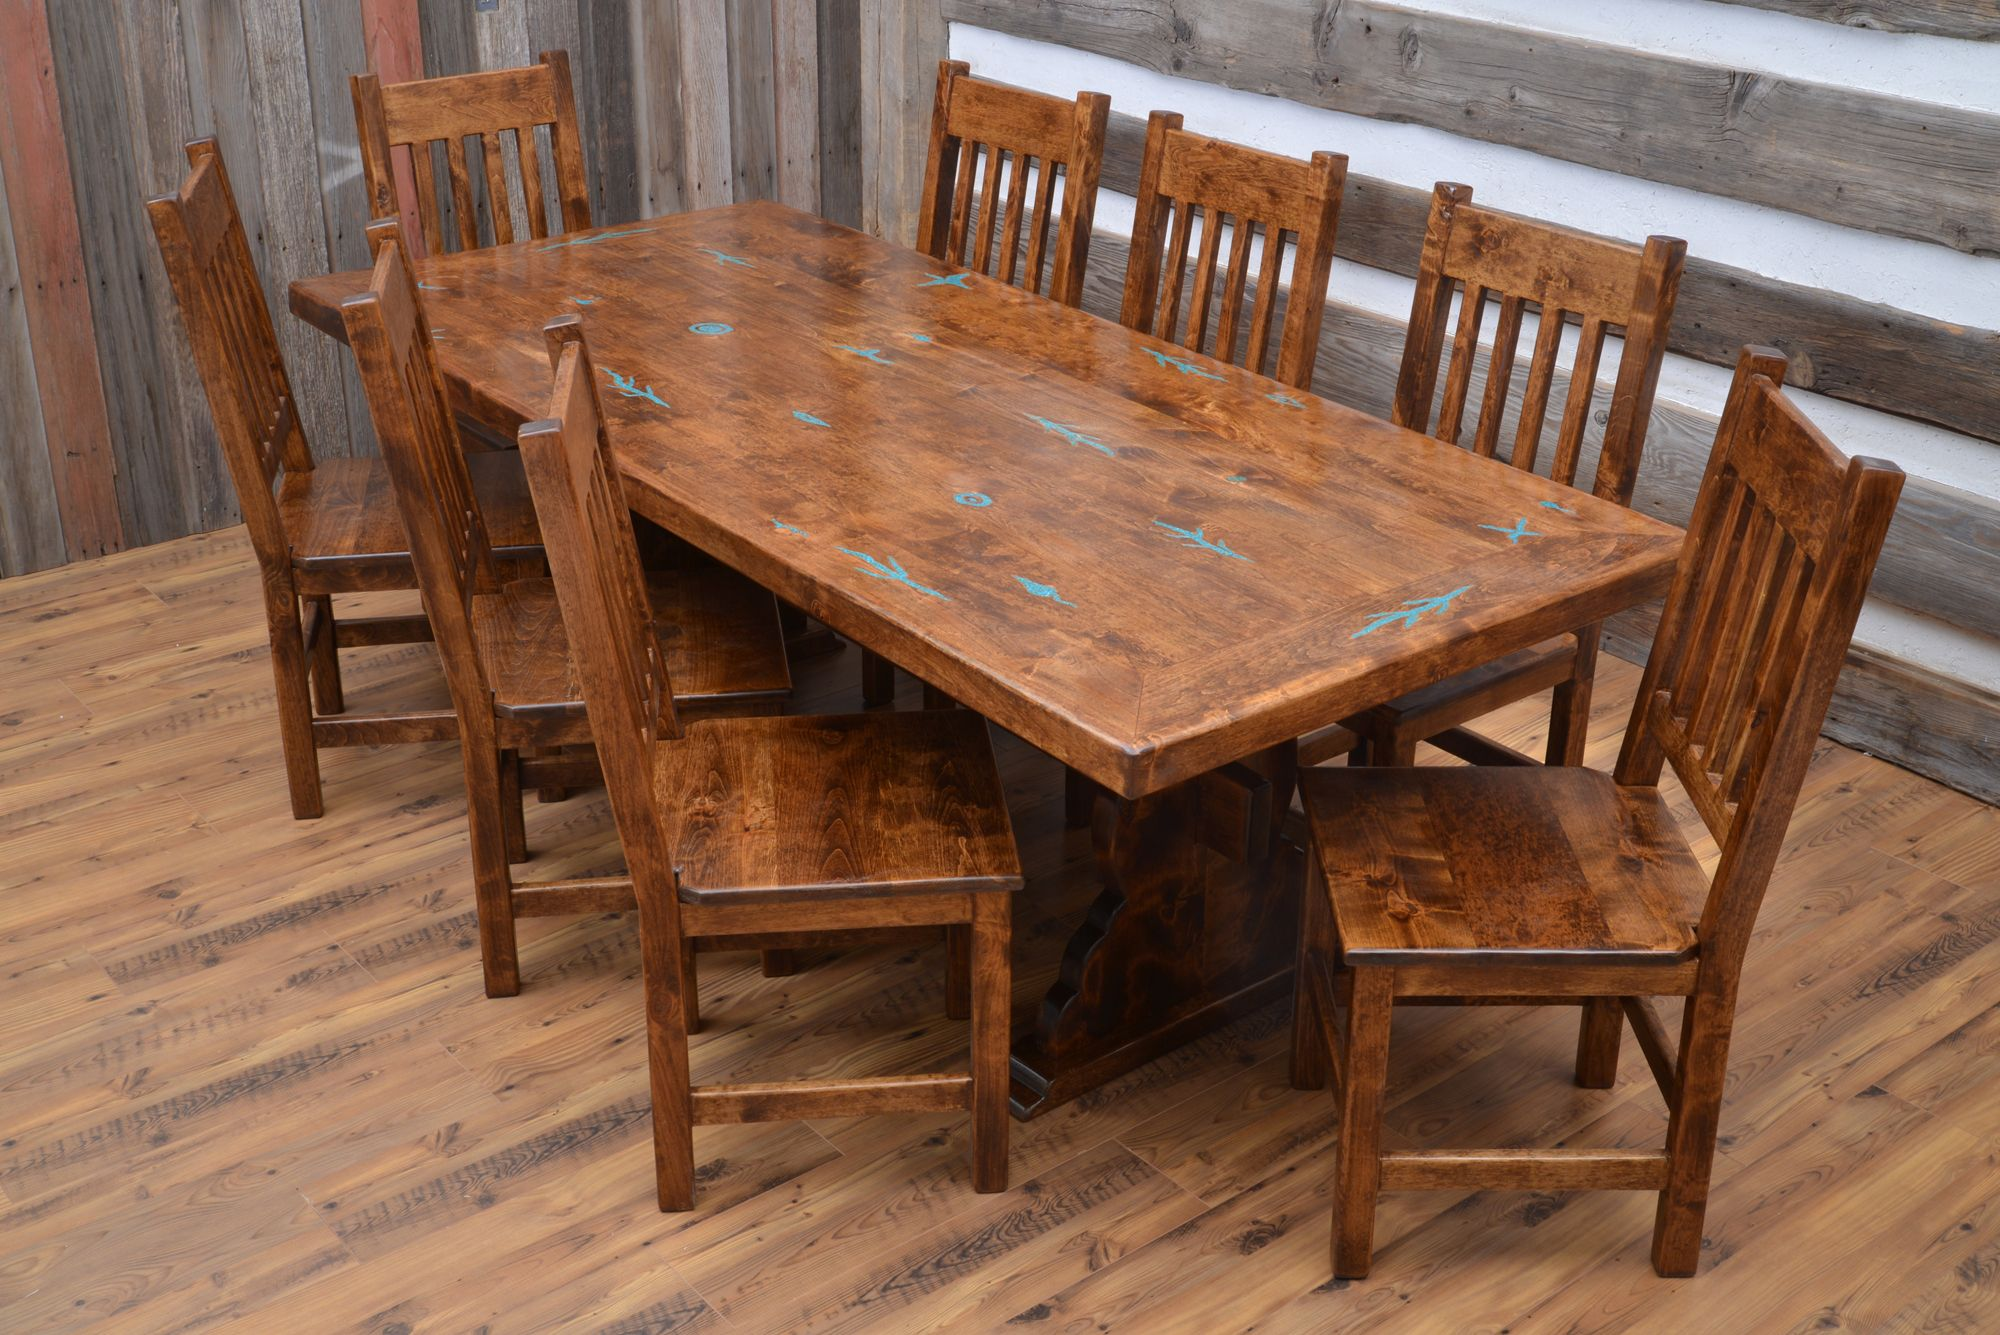 The Santa Fe Style Dining Room Southwestern Dining Chairs Wooden Dining Tables Handmade Dining Room Tables